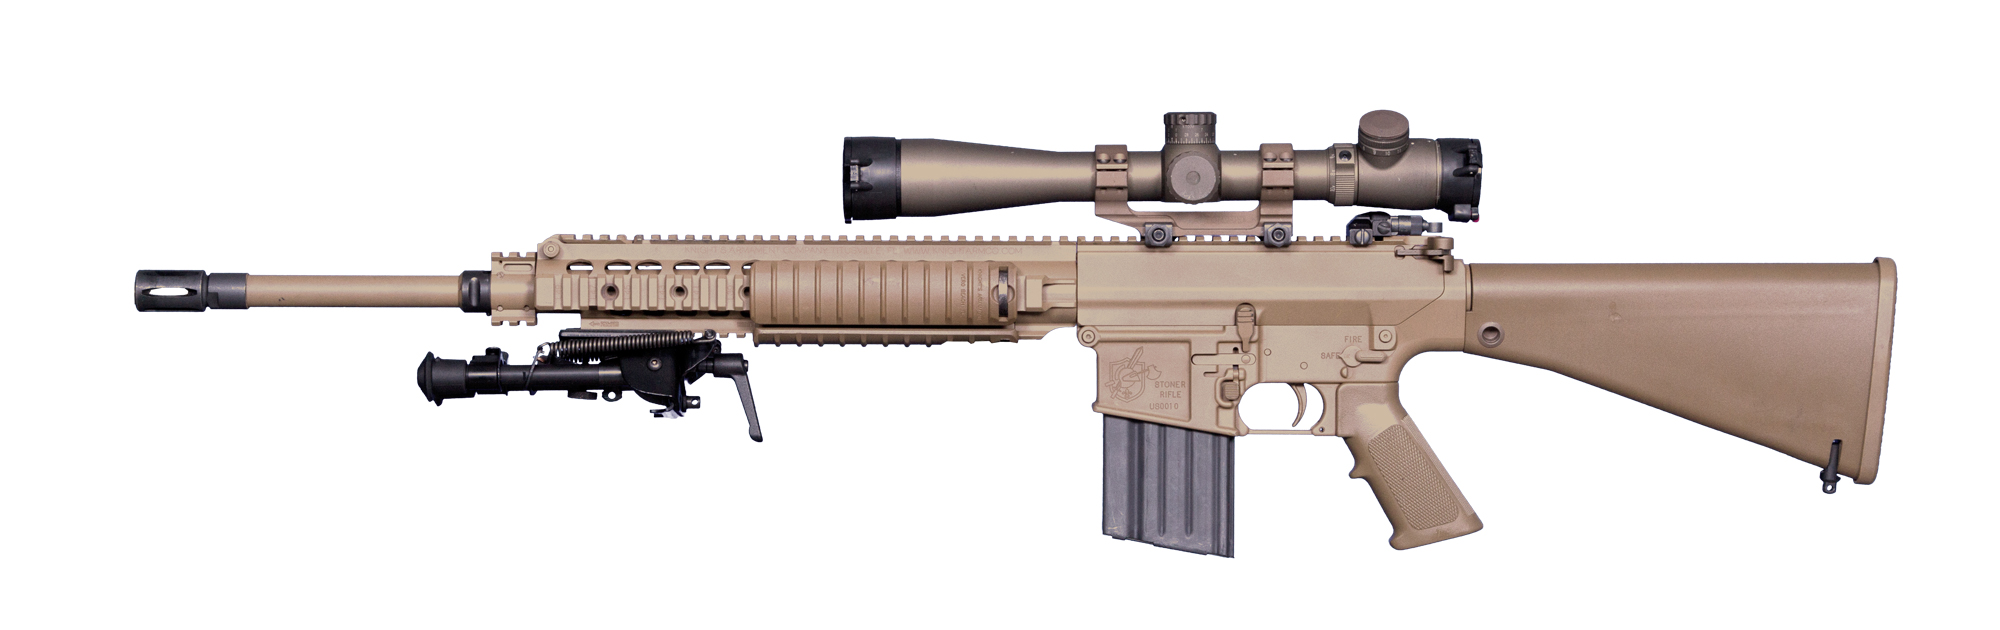 M110 - Knight's Armament M110 Sniper Rifle Suppressed